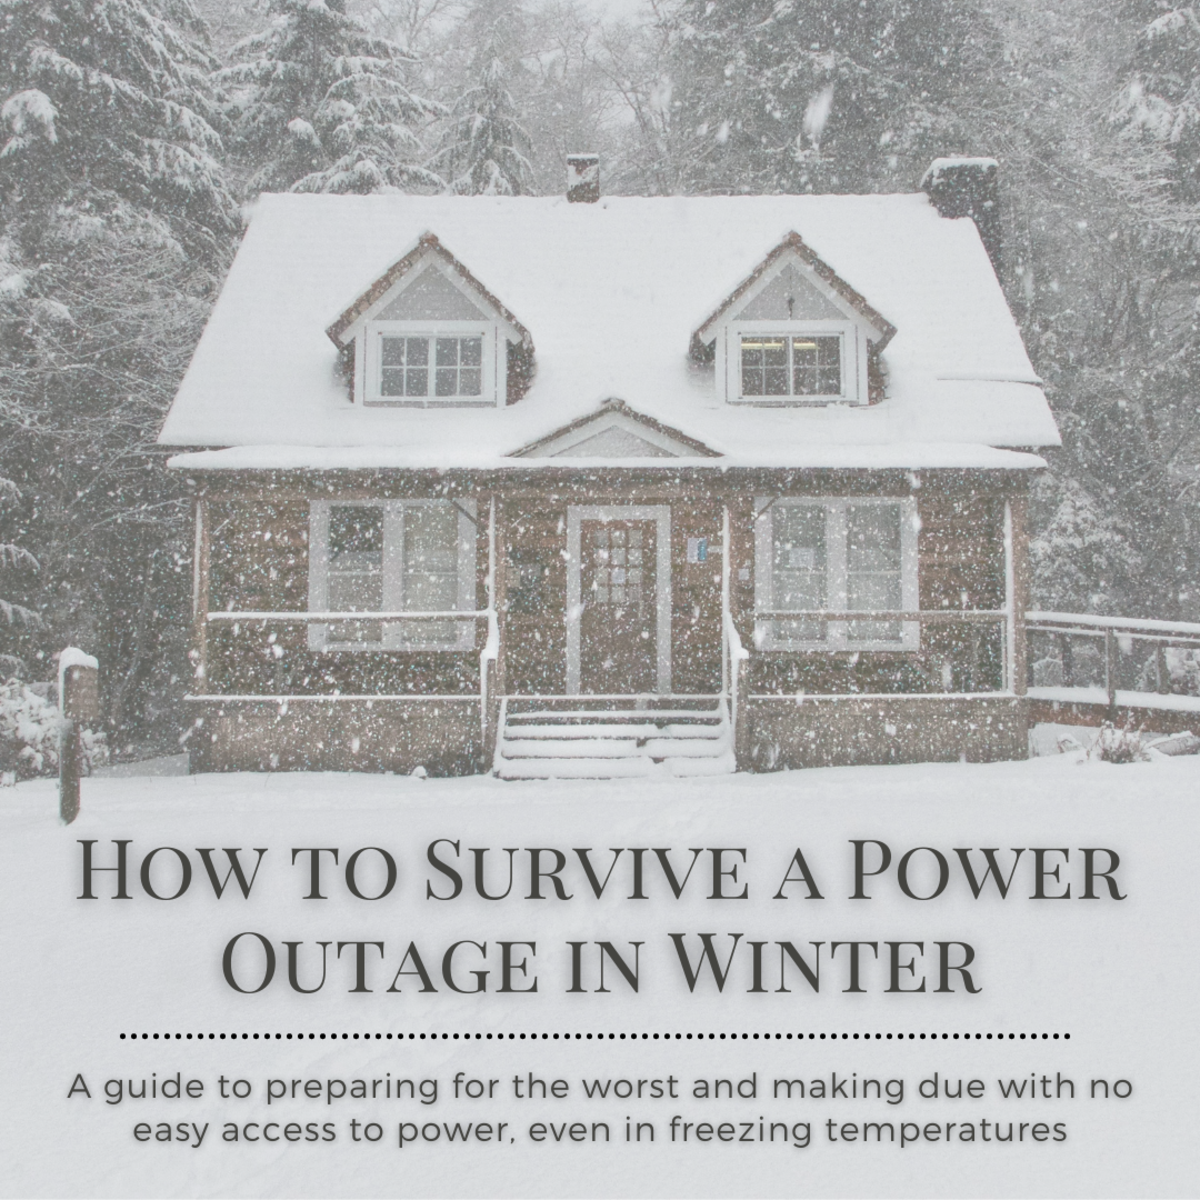 Learn how to prepare for and cope with a winter power outage, even in freezing temperatures.